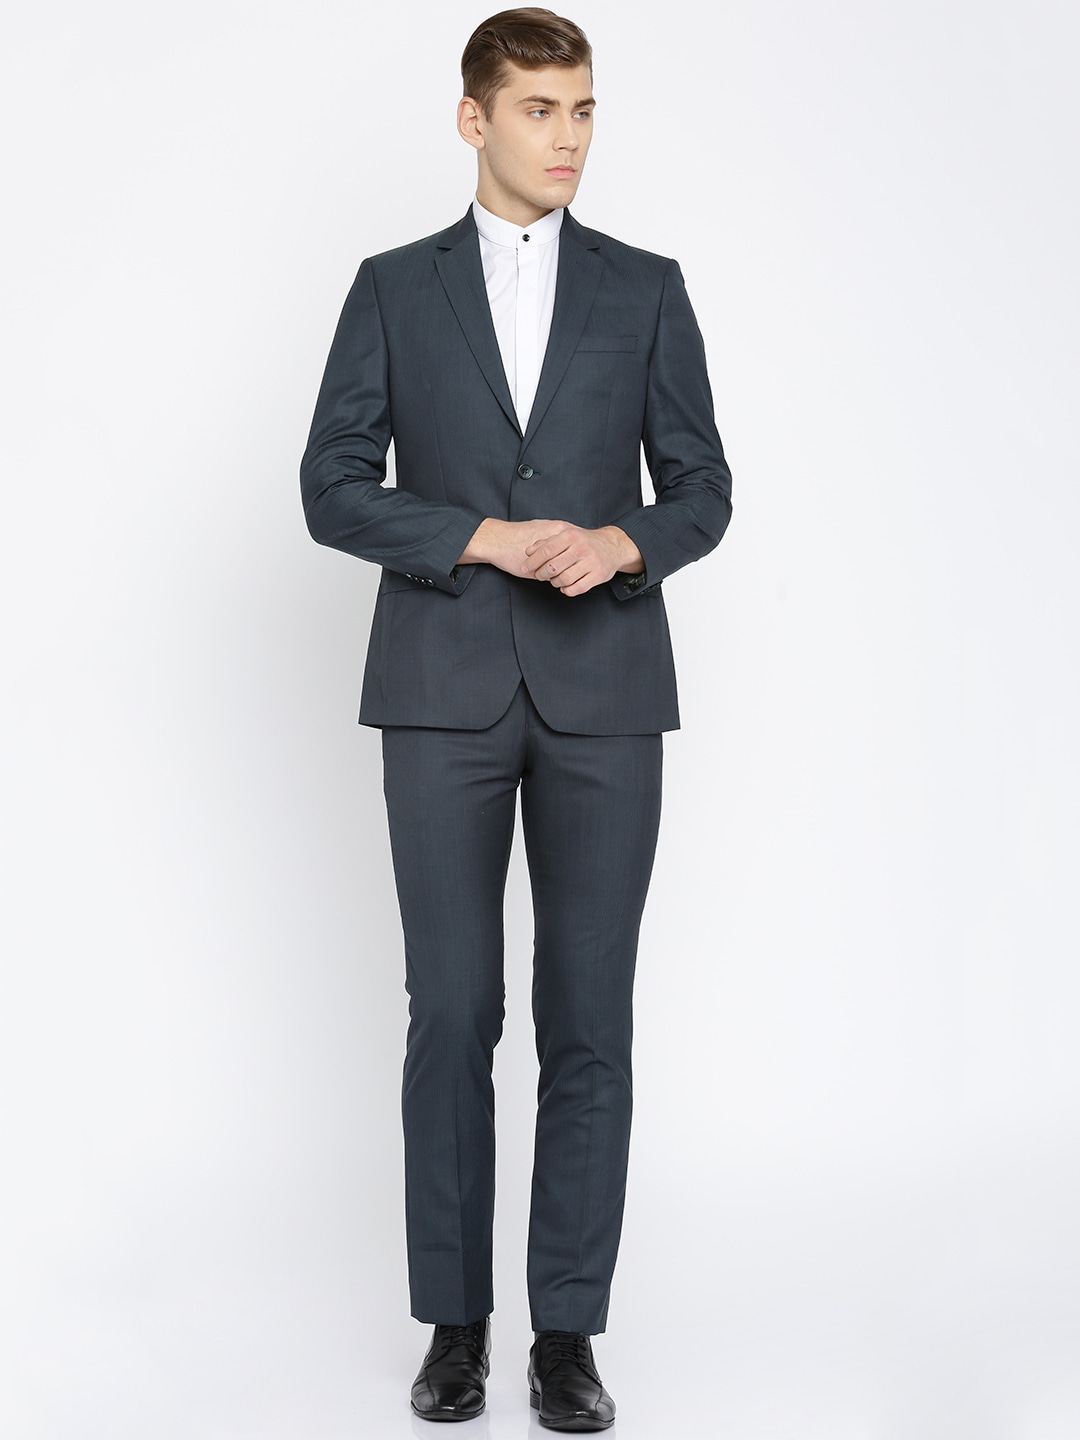 Suits for Men - Buy Men Suits Online, Designer Blazers - Myntra